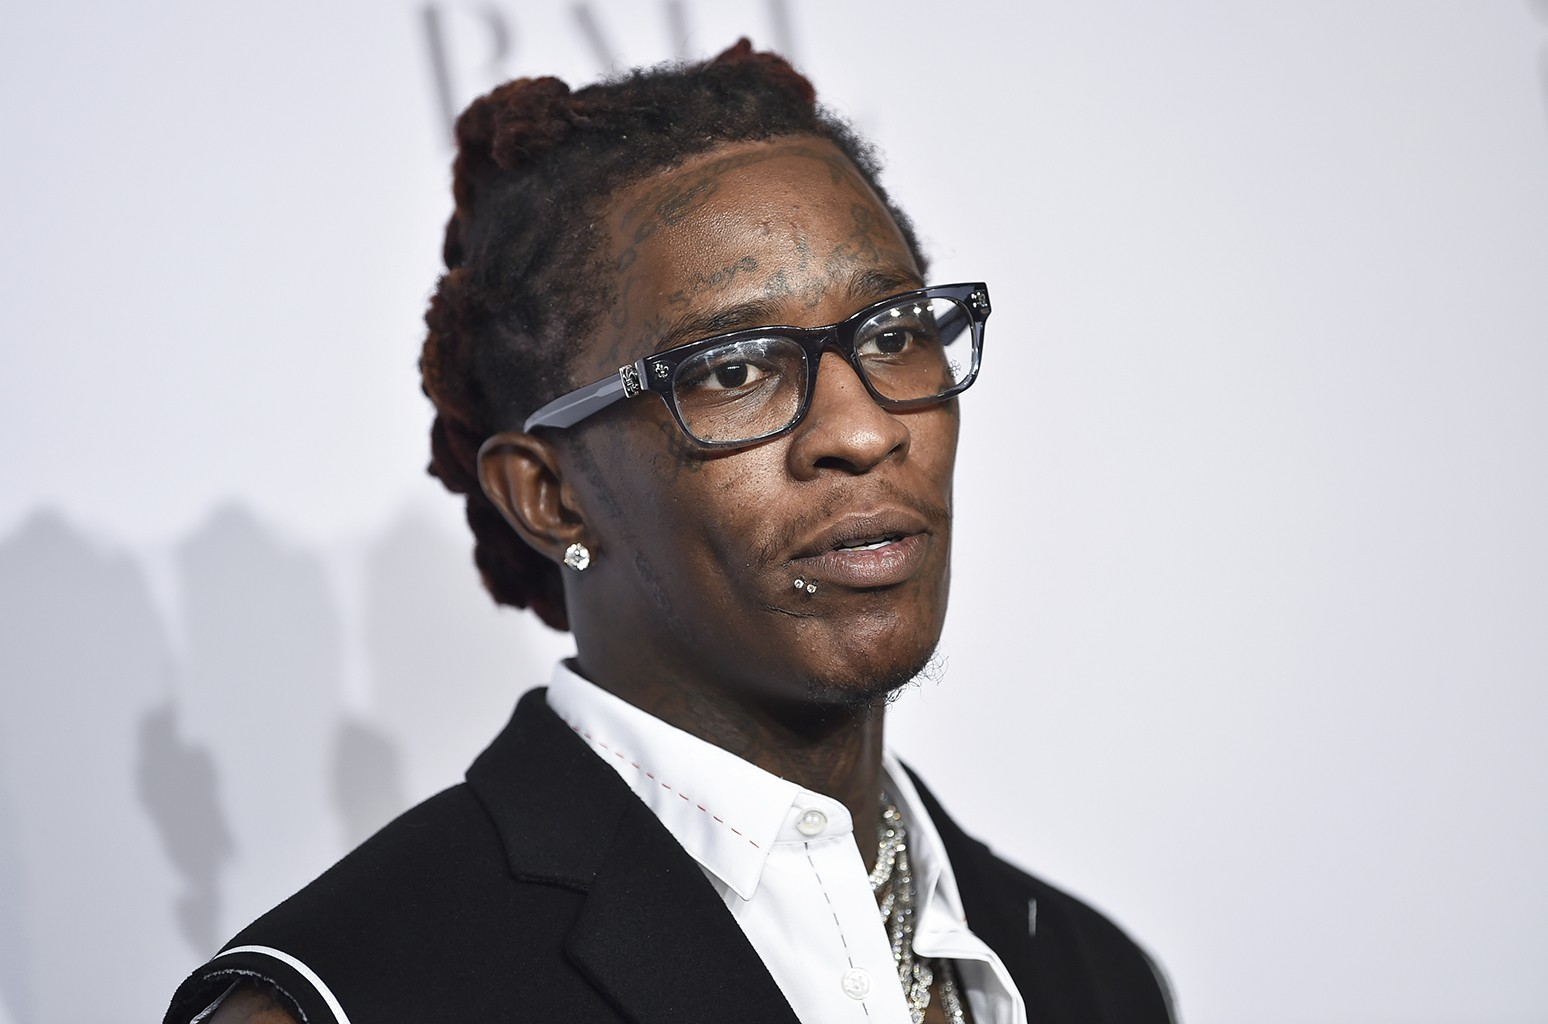 YOUNG THUG IS STILL HOPEFUL OF WINNING MILLIONS IN THE LOTTERY